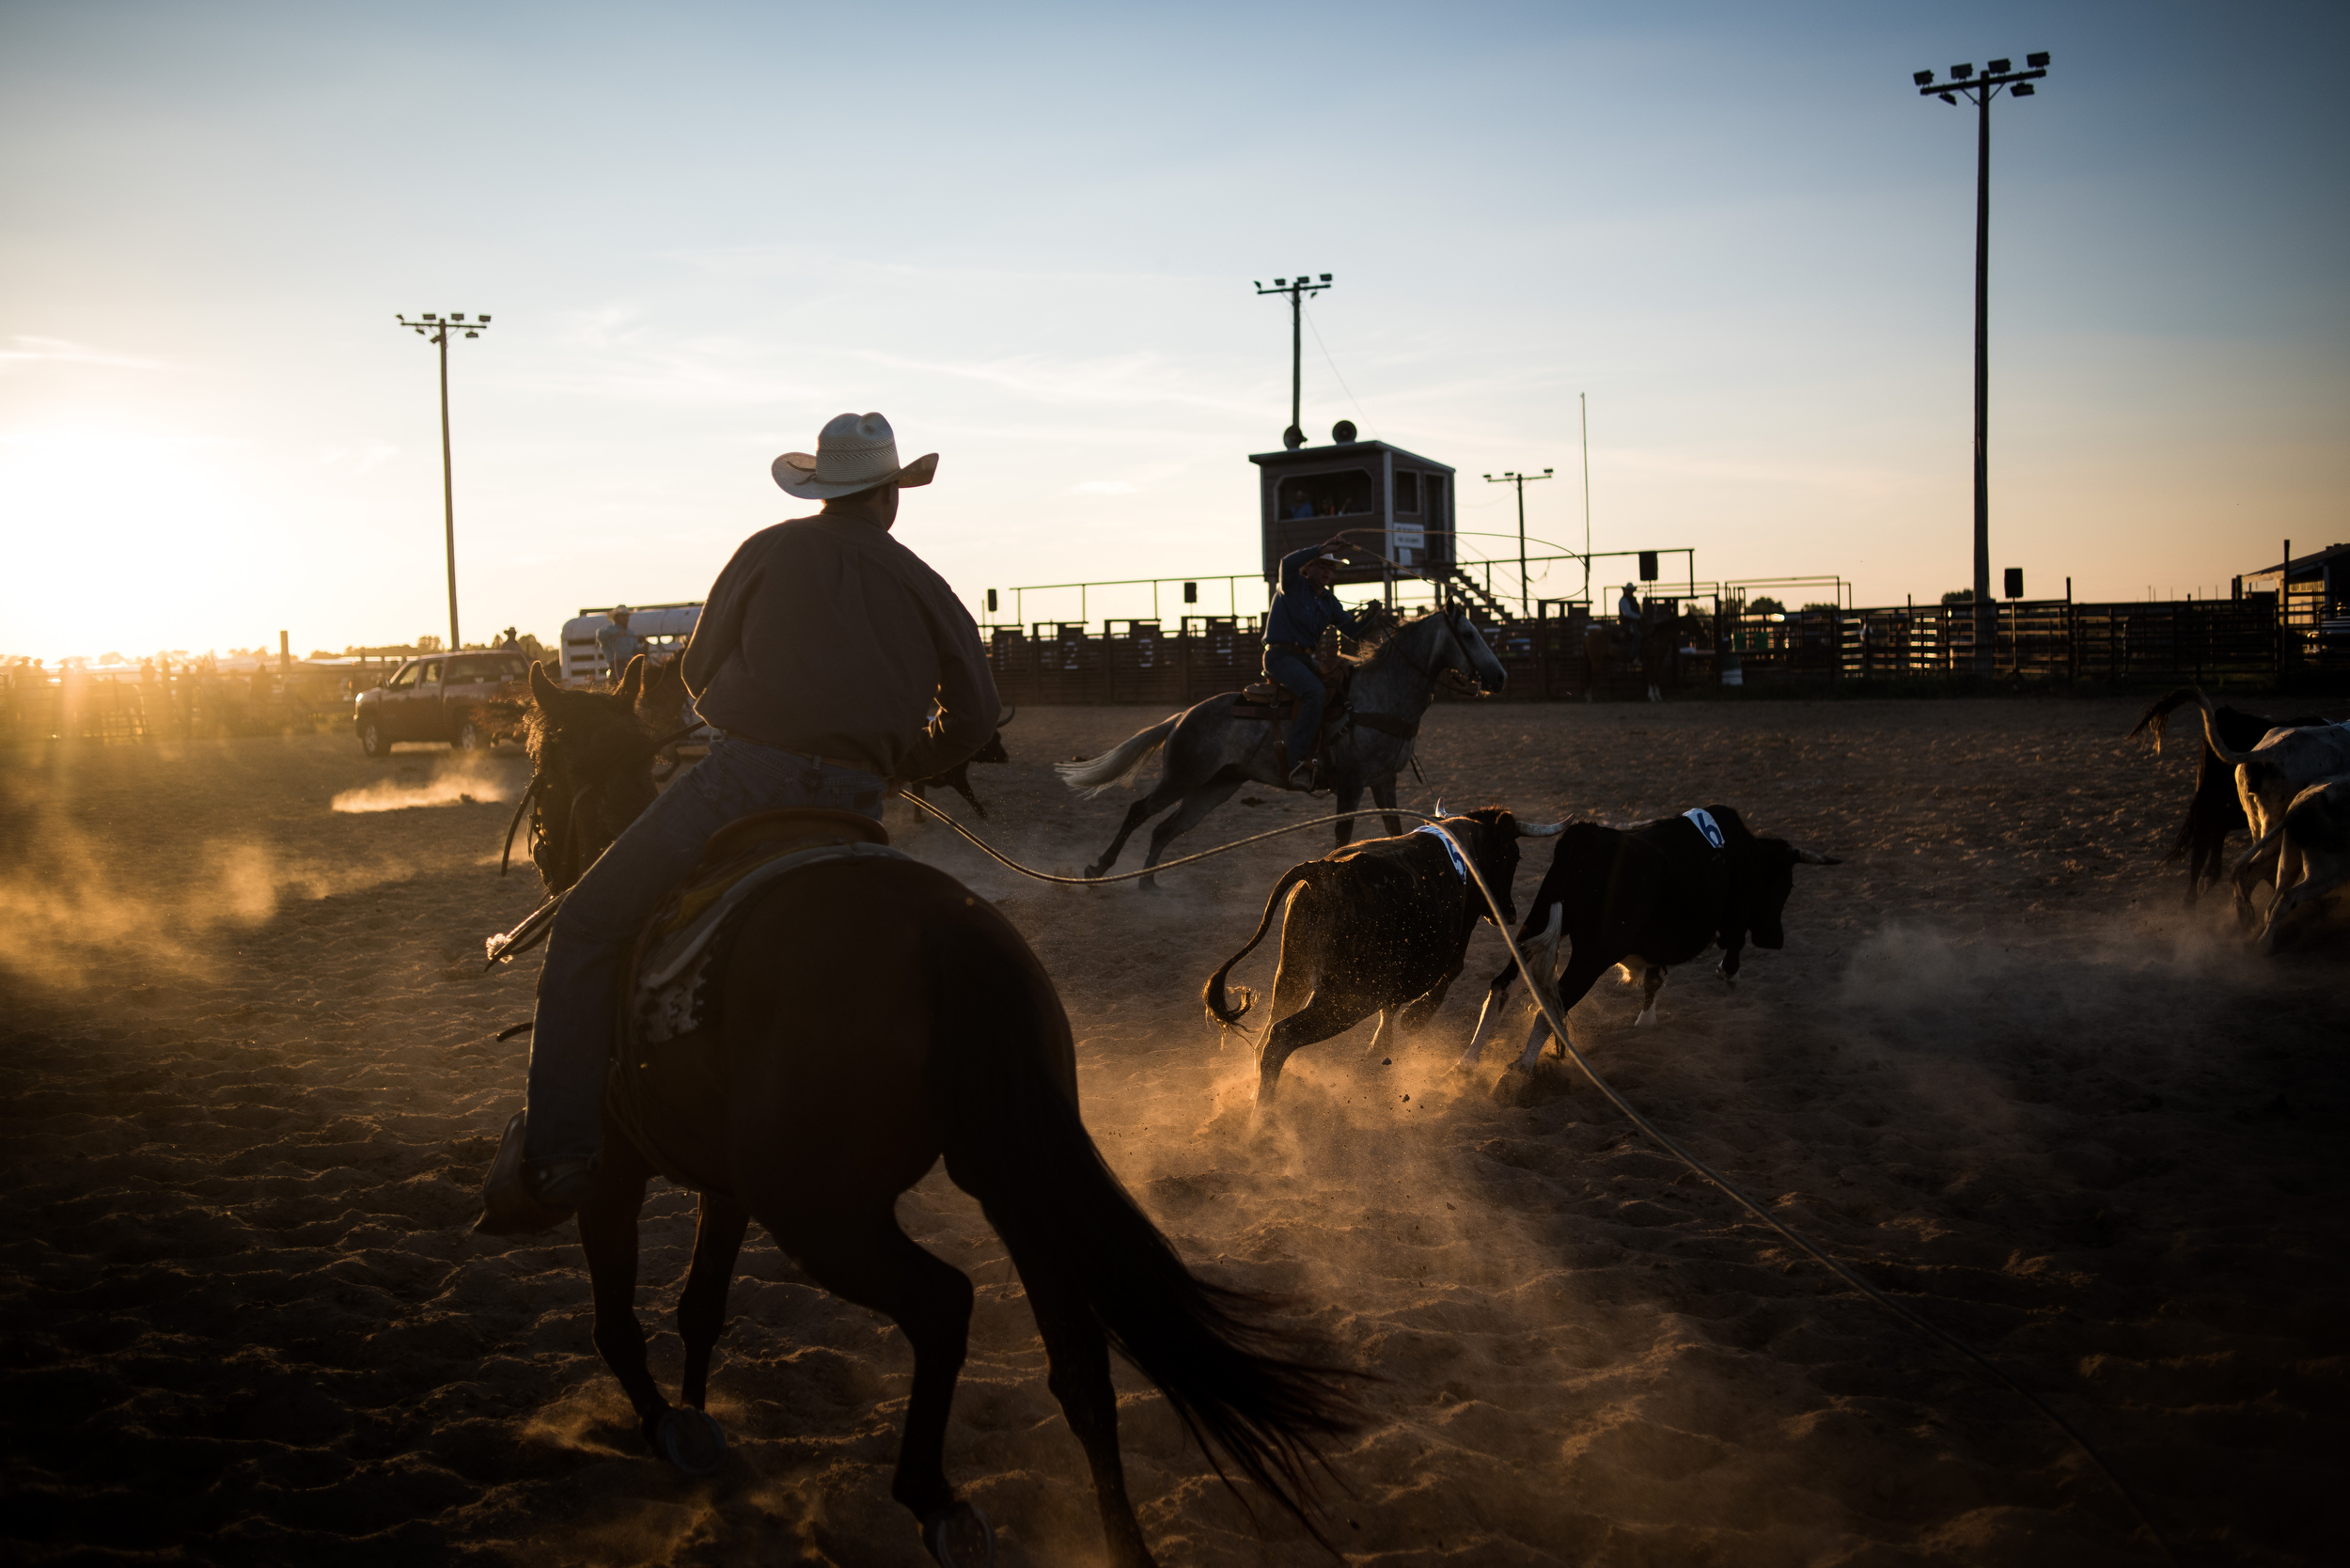 "45º31'27.4""N, 102º28'11.2""W. 111 miles from the nearest McDonald's.  Cowboys compete in a ranch rodeo at the Perkins County Fairgrounds in Bison, SD. Ranch rodeos, unlike rodeos shown on television or seen around much of the country, are team events where four riders show their skills as horsemen and ranch hands in activities that would actually be performed on a ranch like trailer loading."